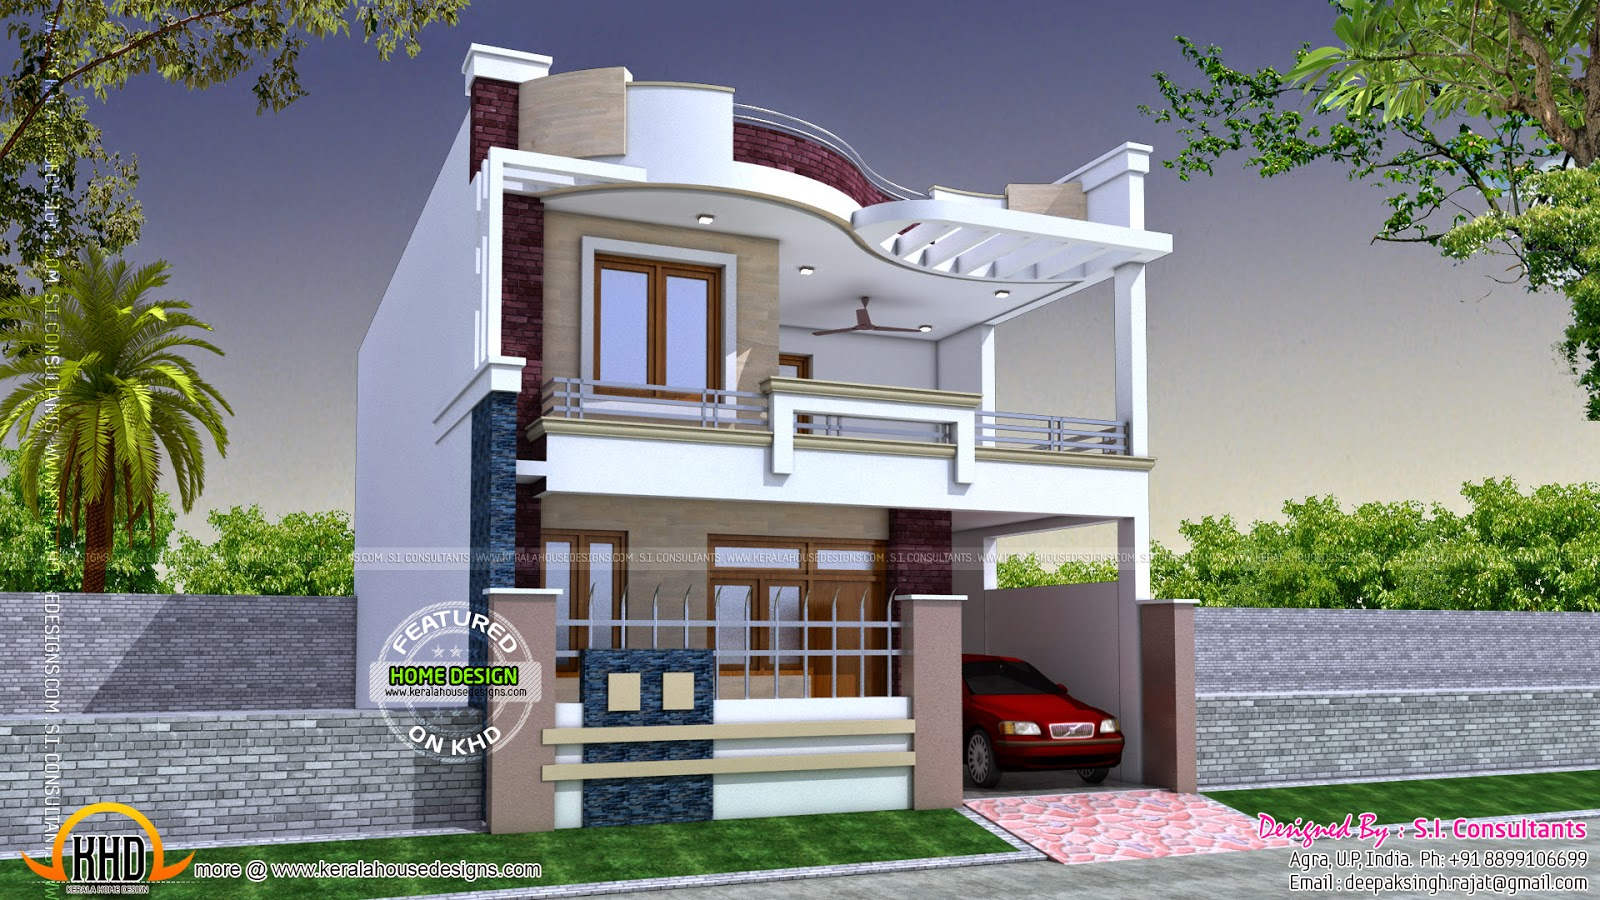 Modern indian home design kerala home design and floor plans Indian house front design photo